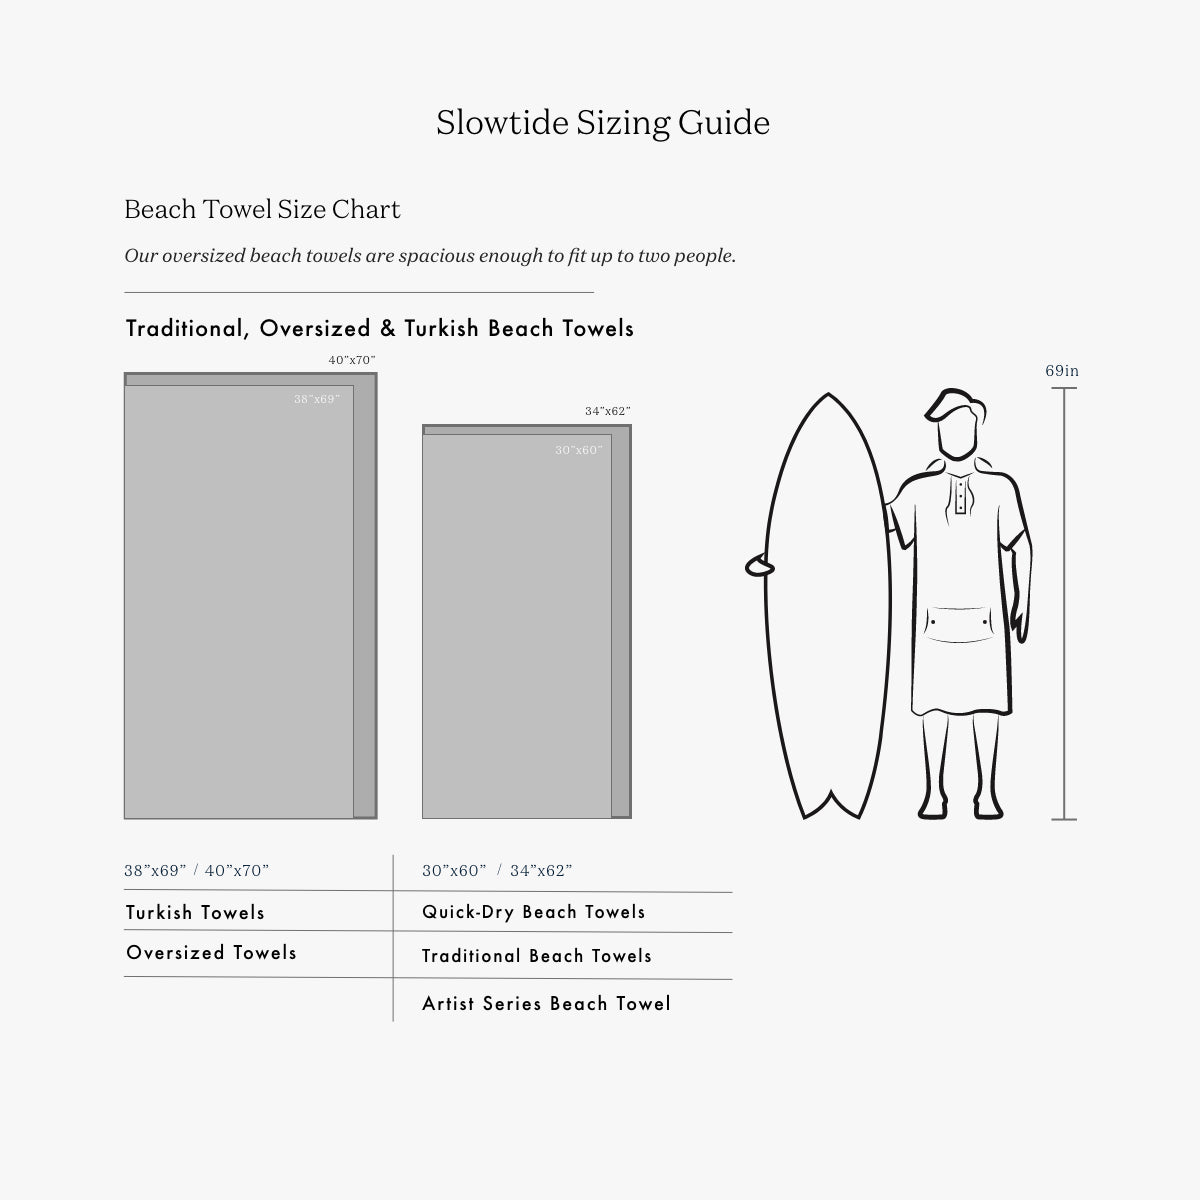 1619 Quick-Dry Towel - Slowtide